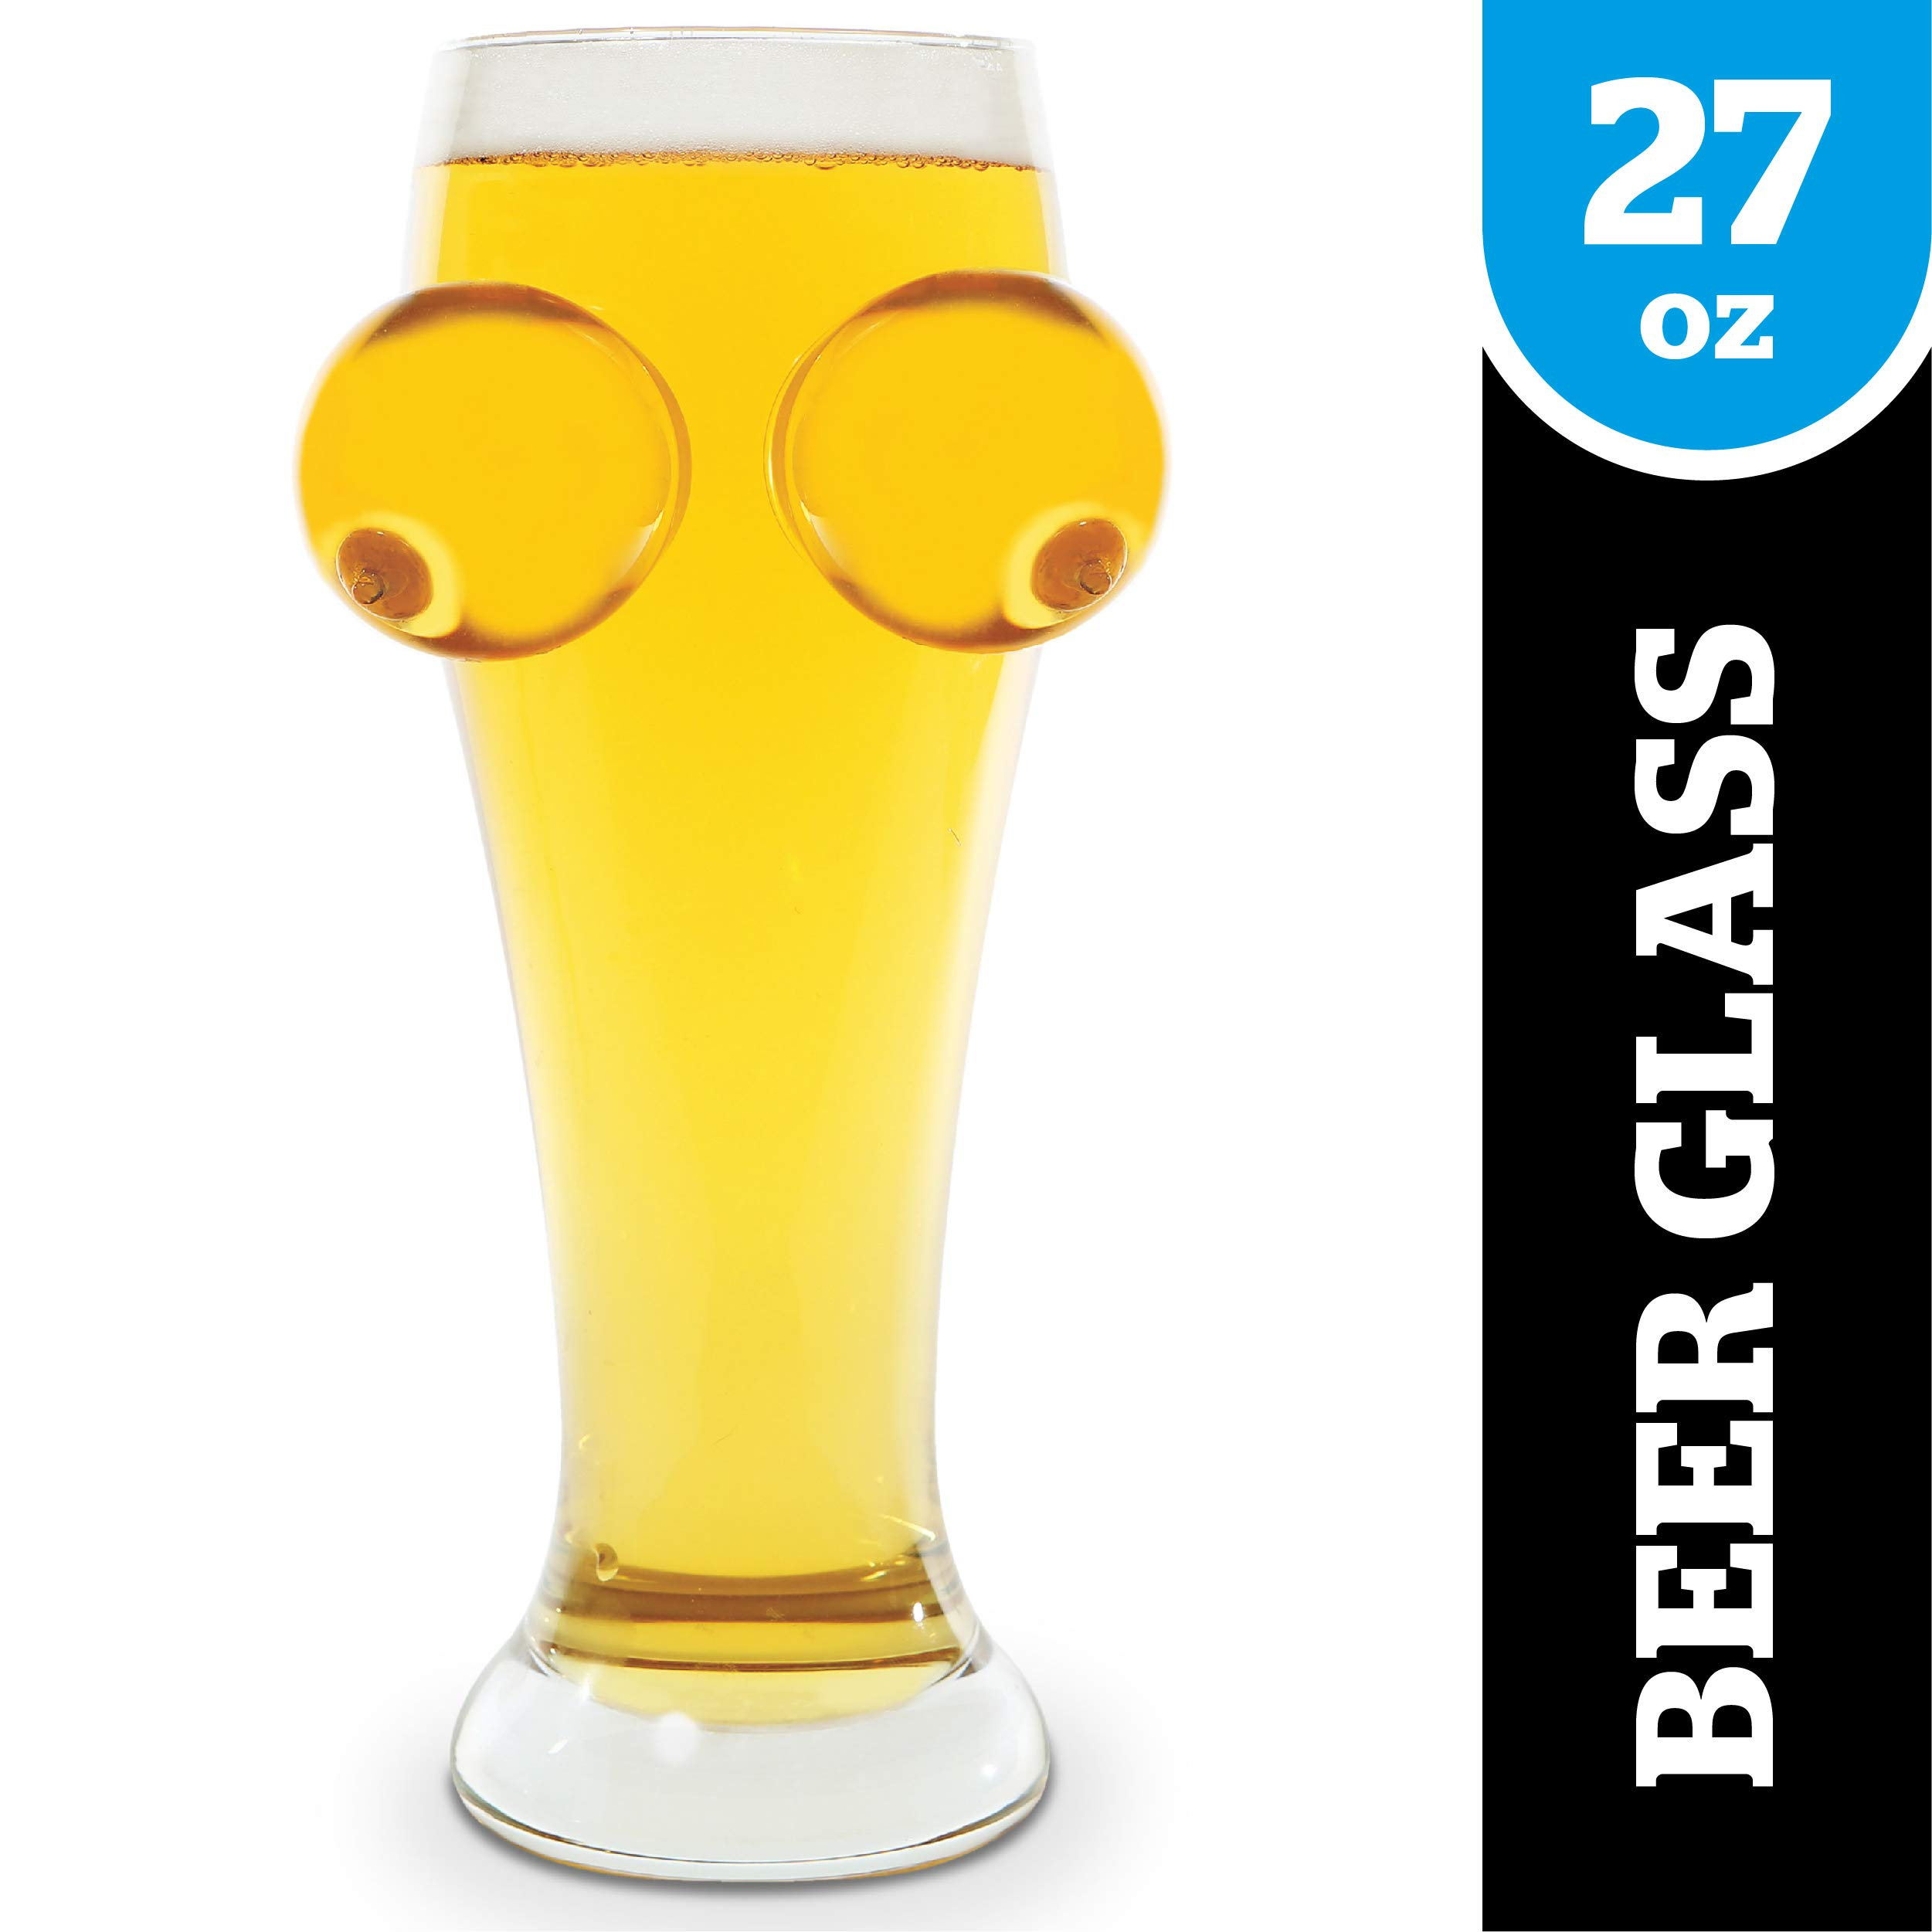 BigMouth Inc Boobie Beer Glass, Funny Novelty Drinking Glass, Holds 27 oz, Pilsner, Great for Other Beers and Drinks